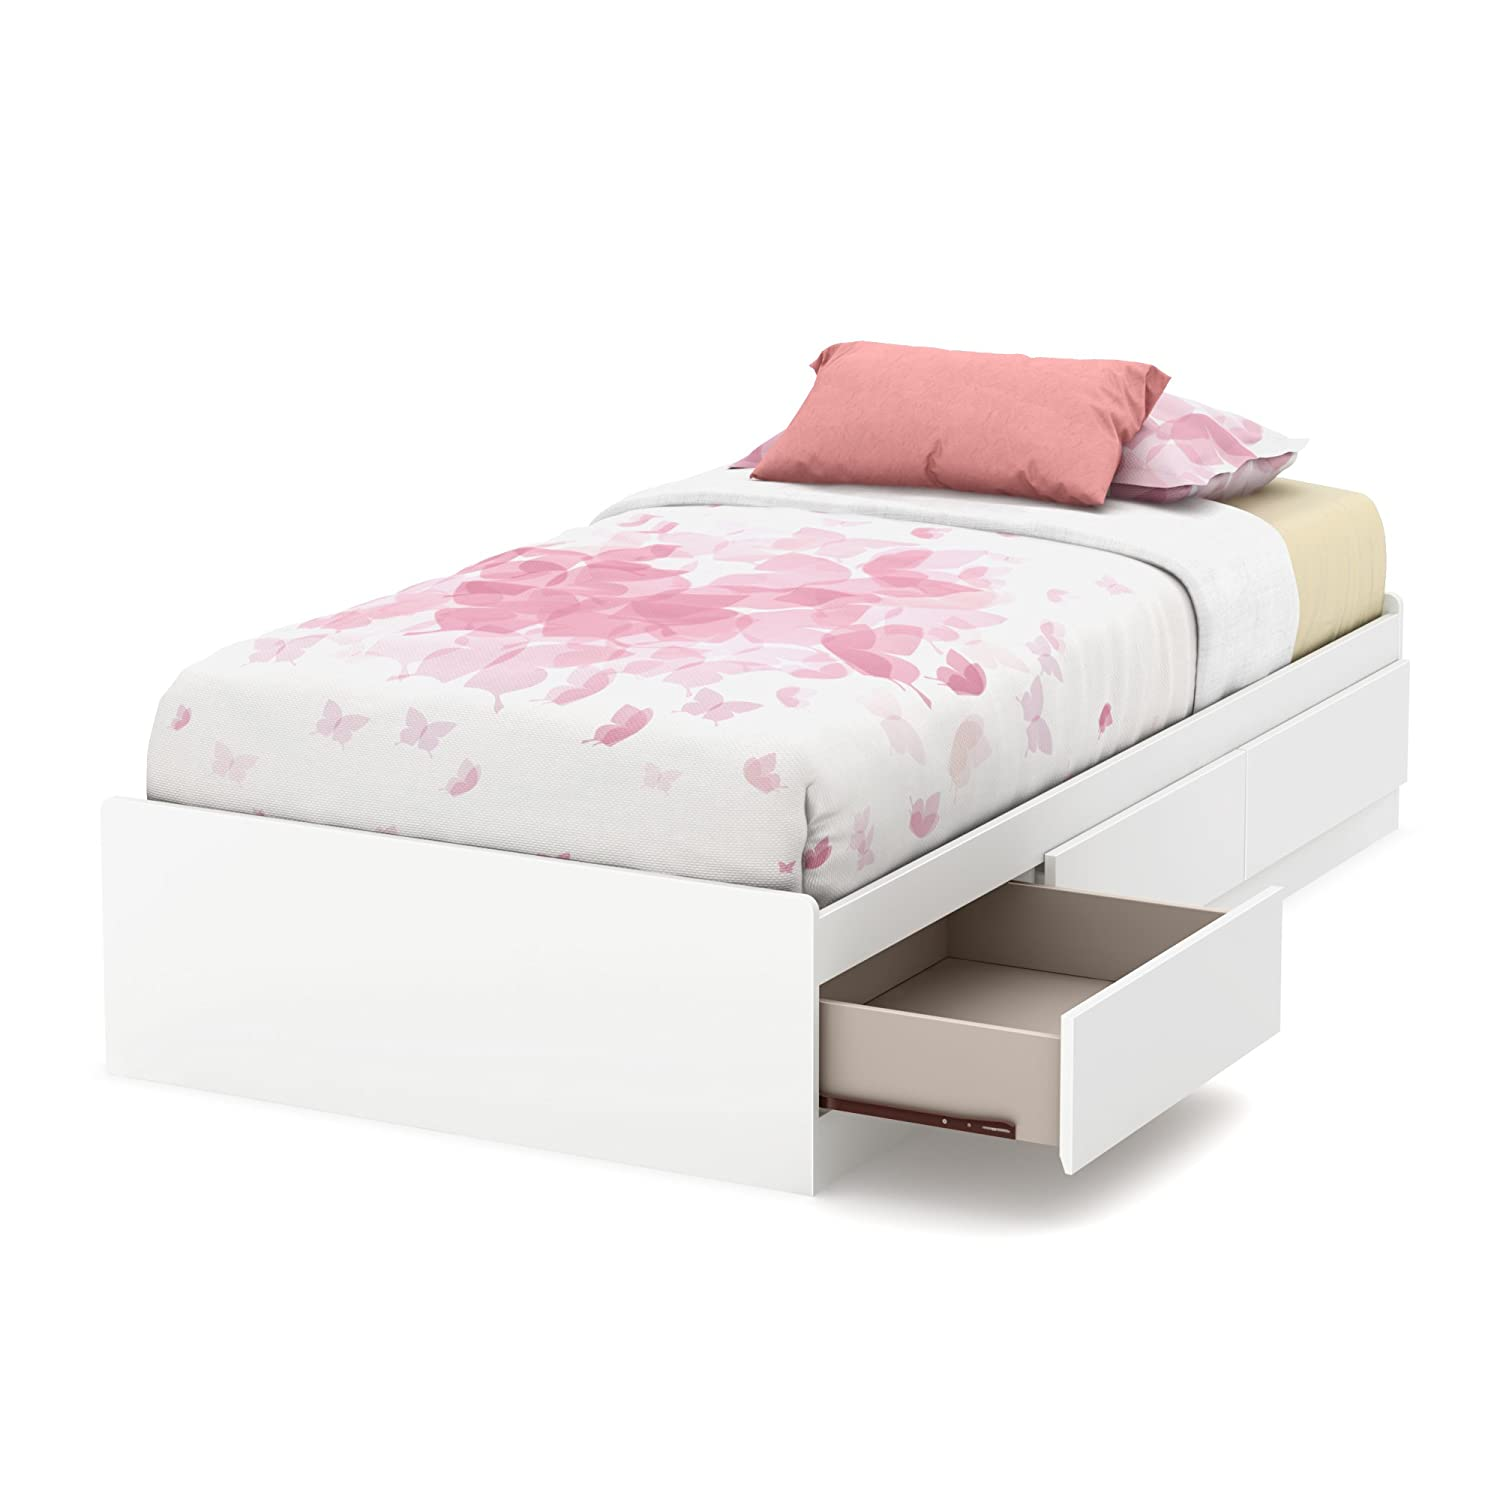 amazoncom south shore inch vito mates bed with  drawers  - south shore  callesto mates bed with  drawers twin pure white